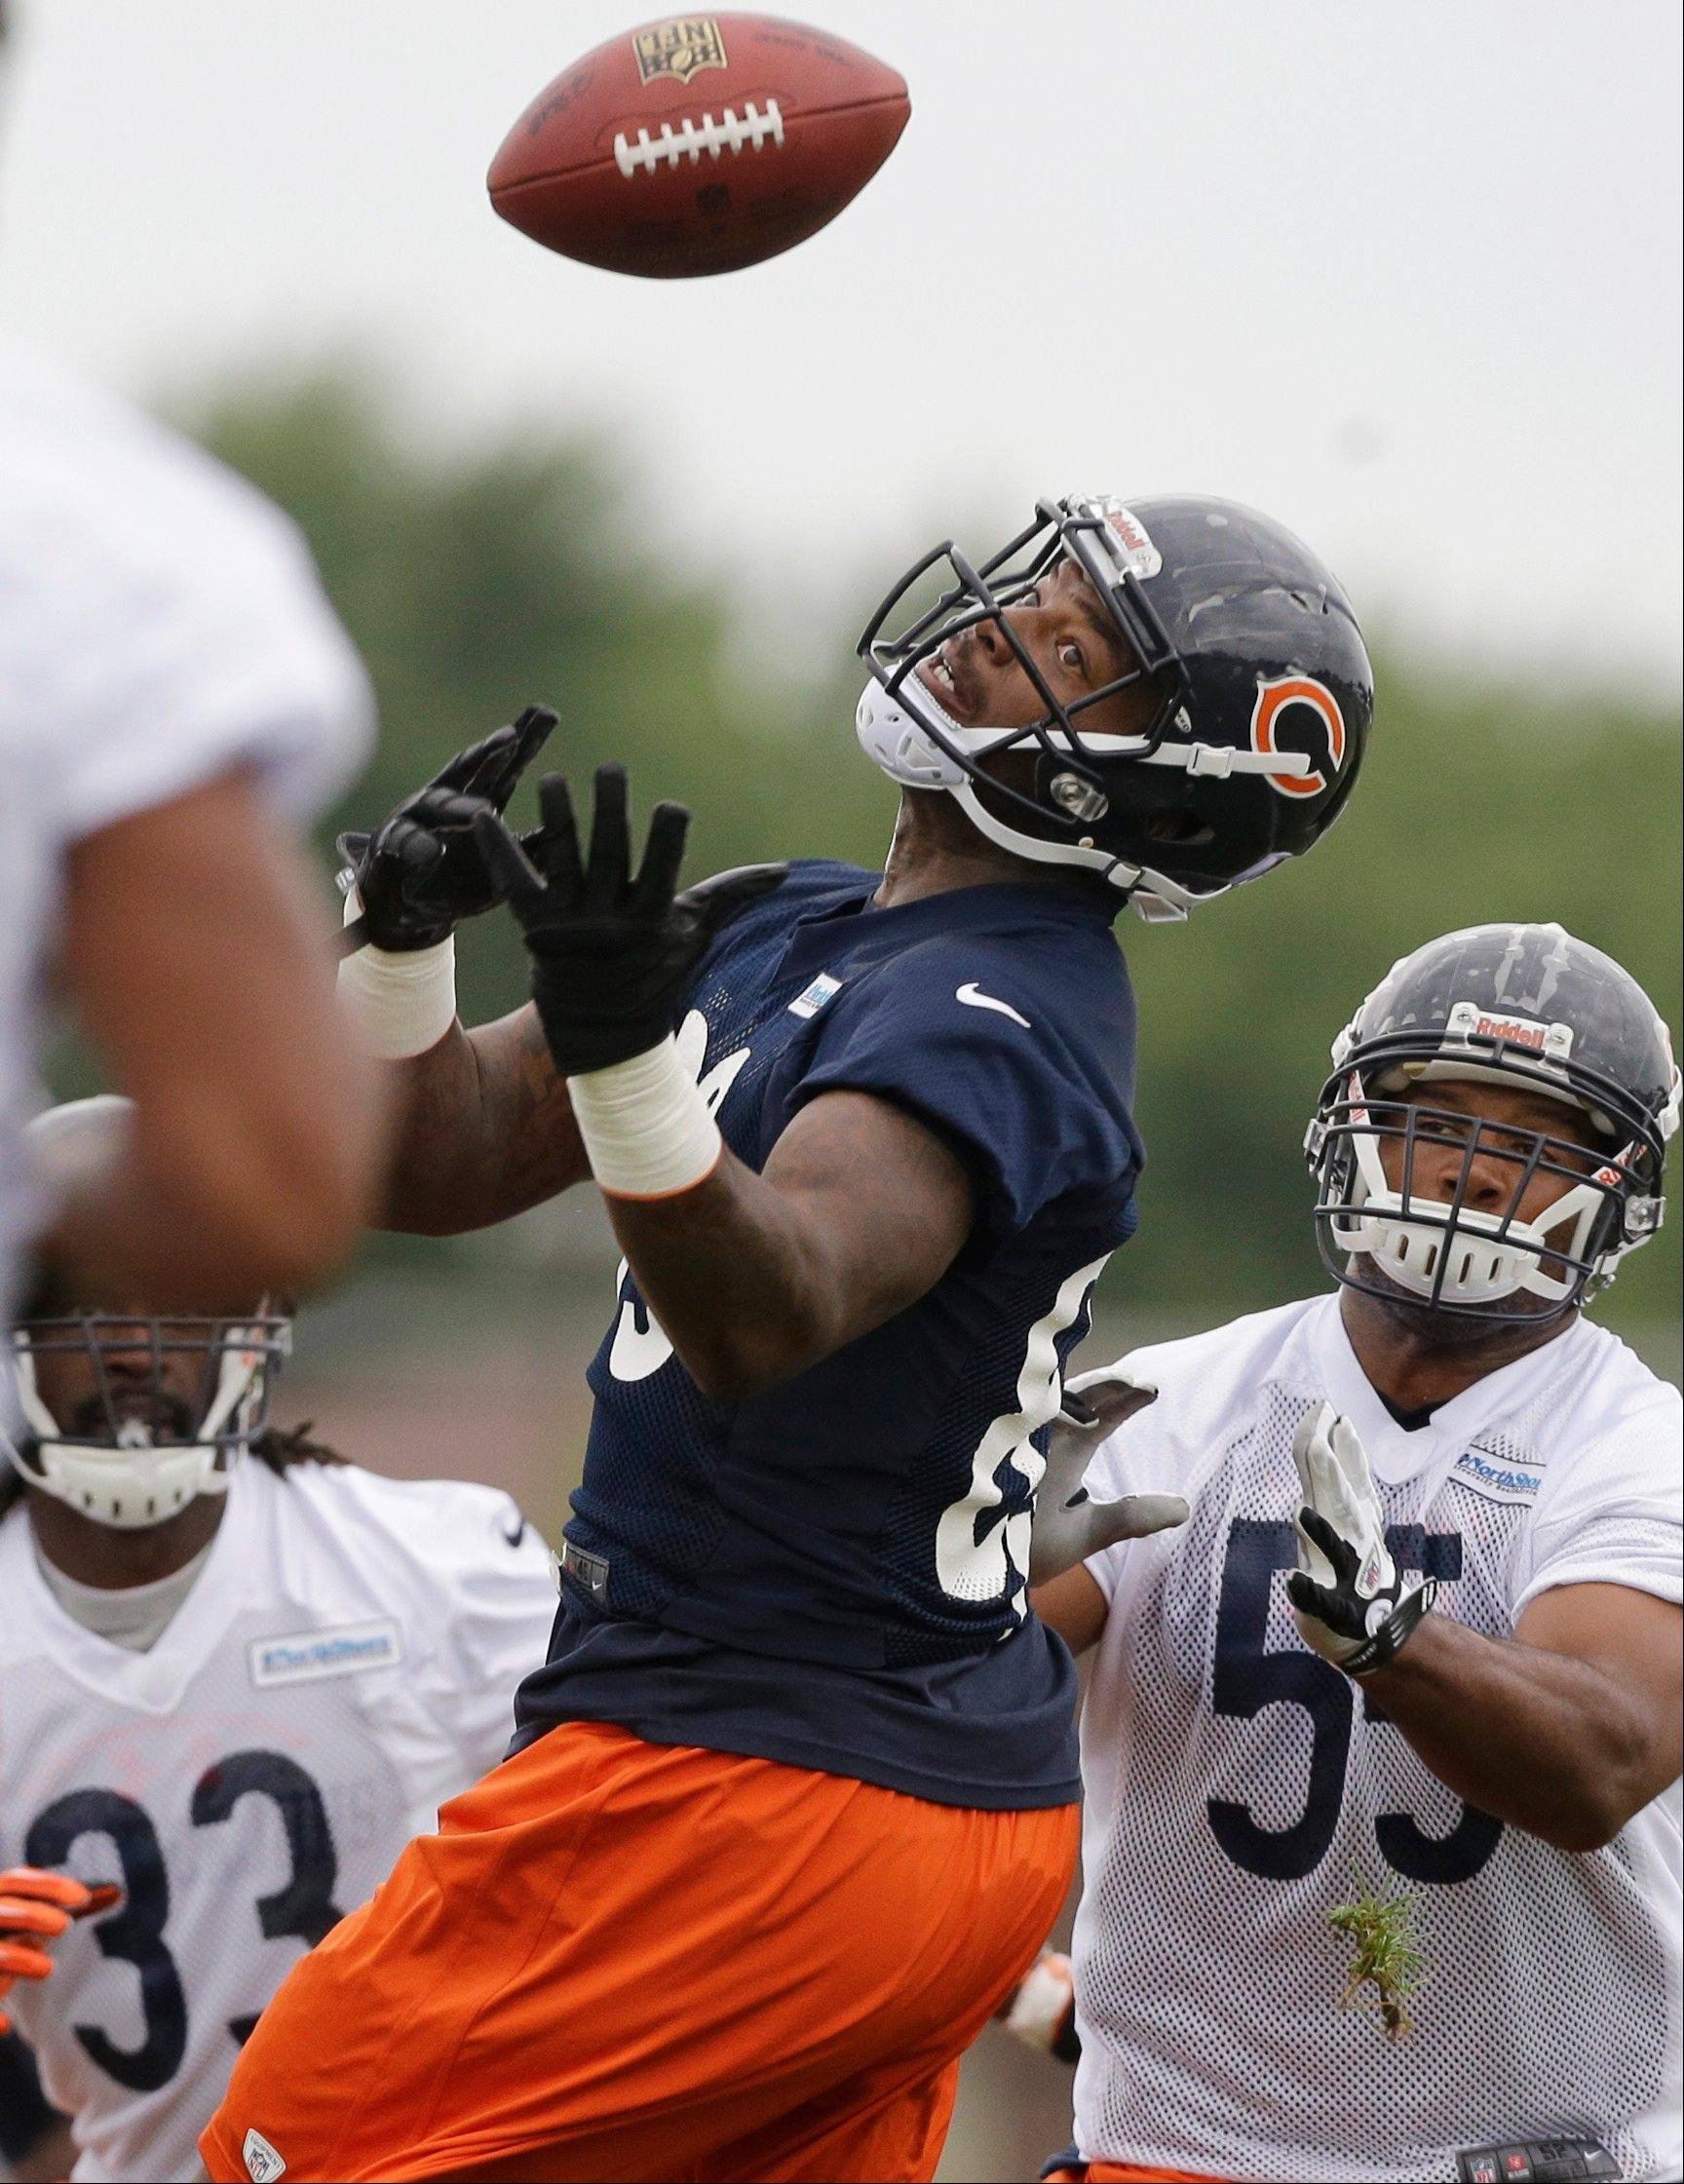 Chicago Bears tight end Martellus Bennett tries to catch a ball.